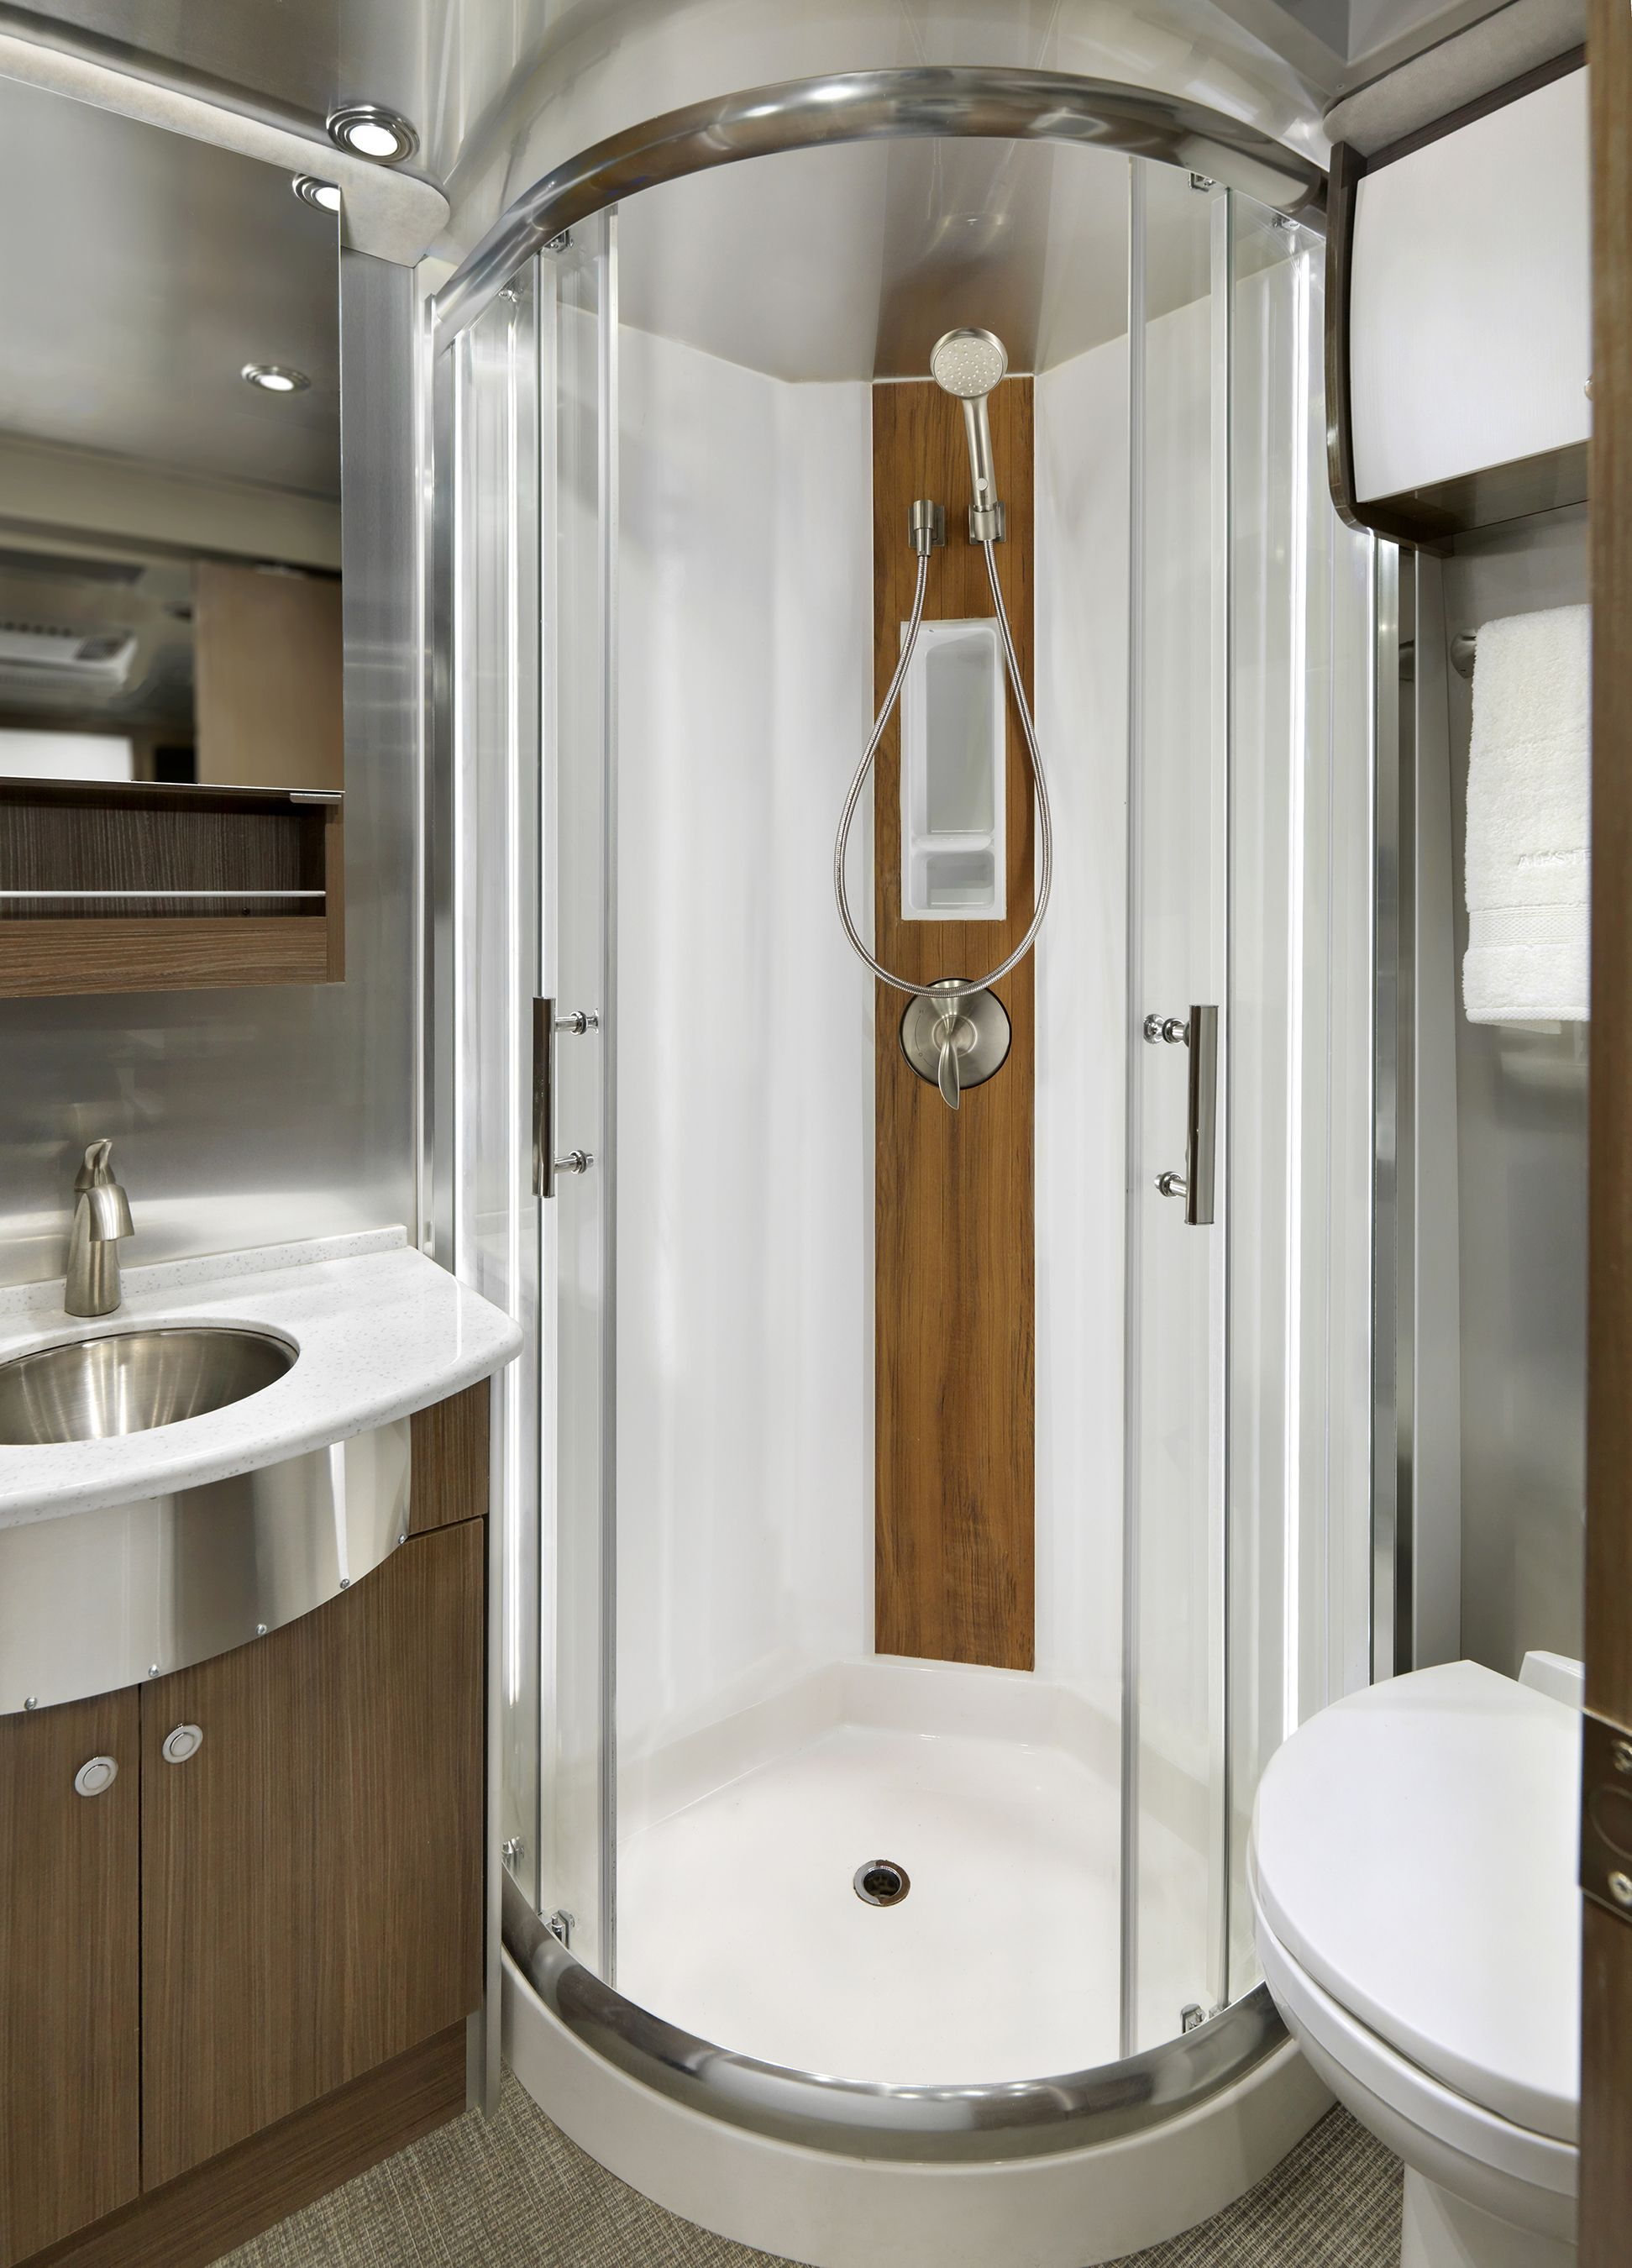 The 2018 Atlas Luxury Mercedes Benz Diesel Motorhome Shower Call Mike Harlan At 239 693 8200 For More Information